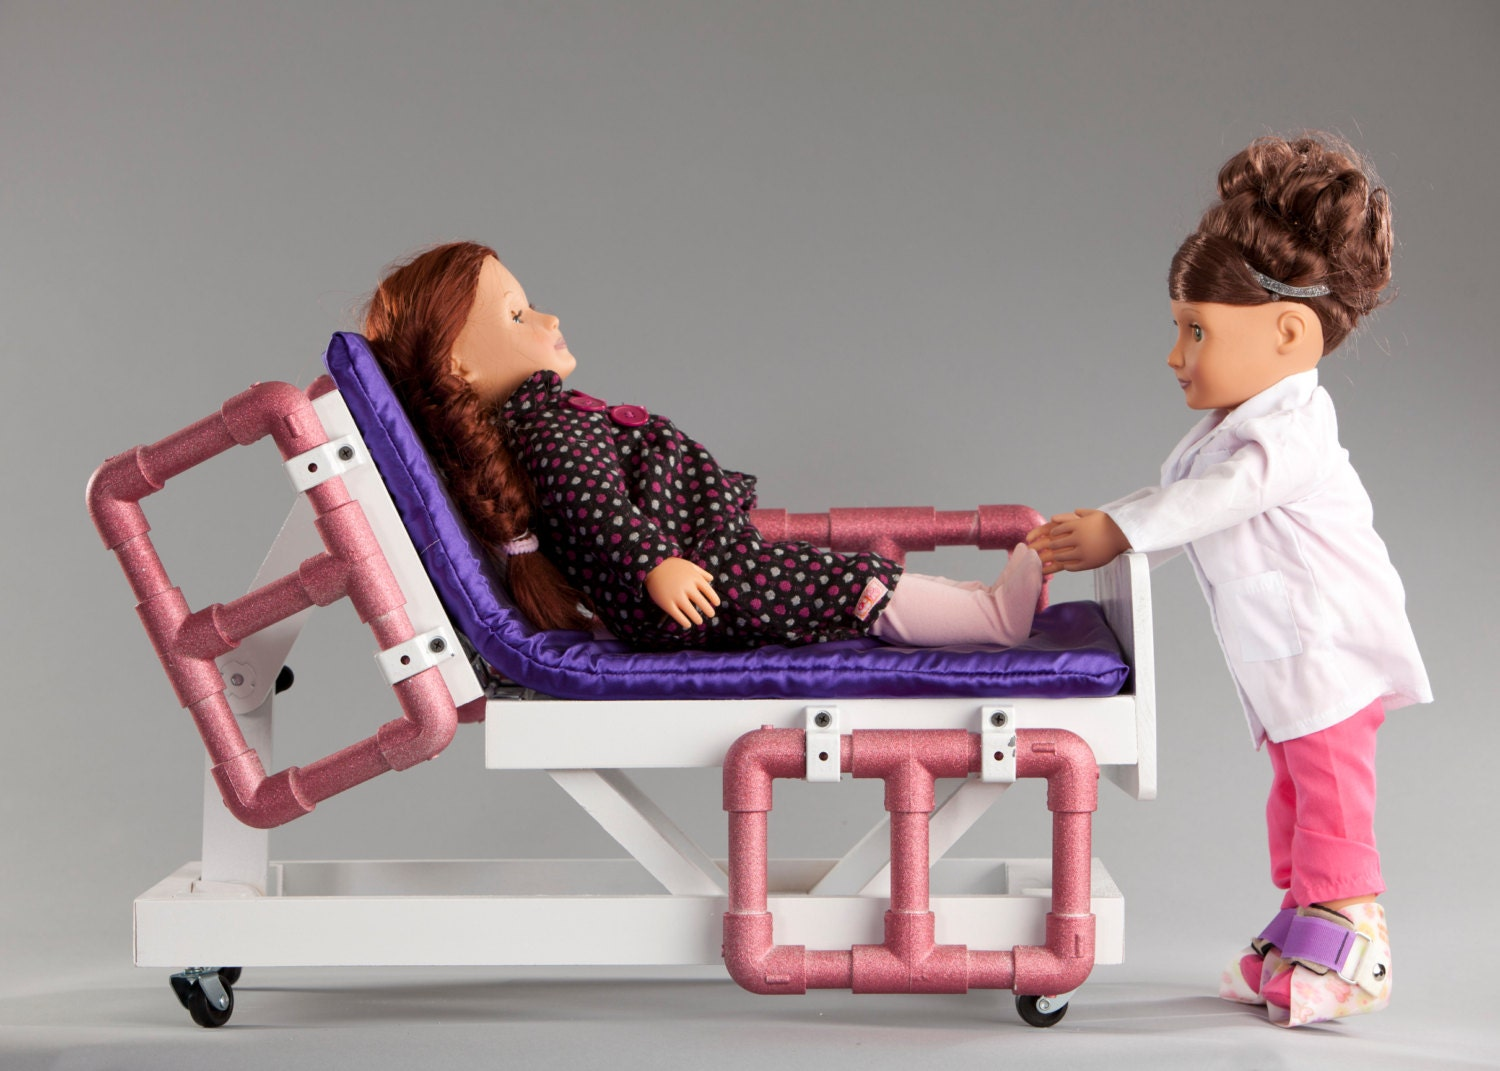 American Made Bedroom Furniture Hospital Bed Compatible With American Girl Or 18 Inch Doll